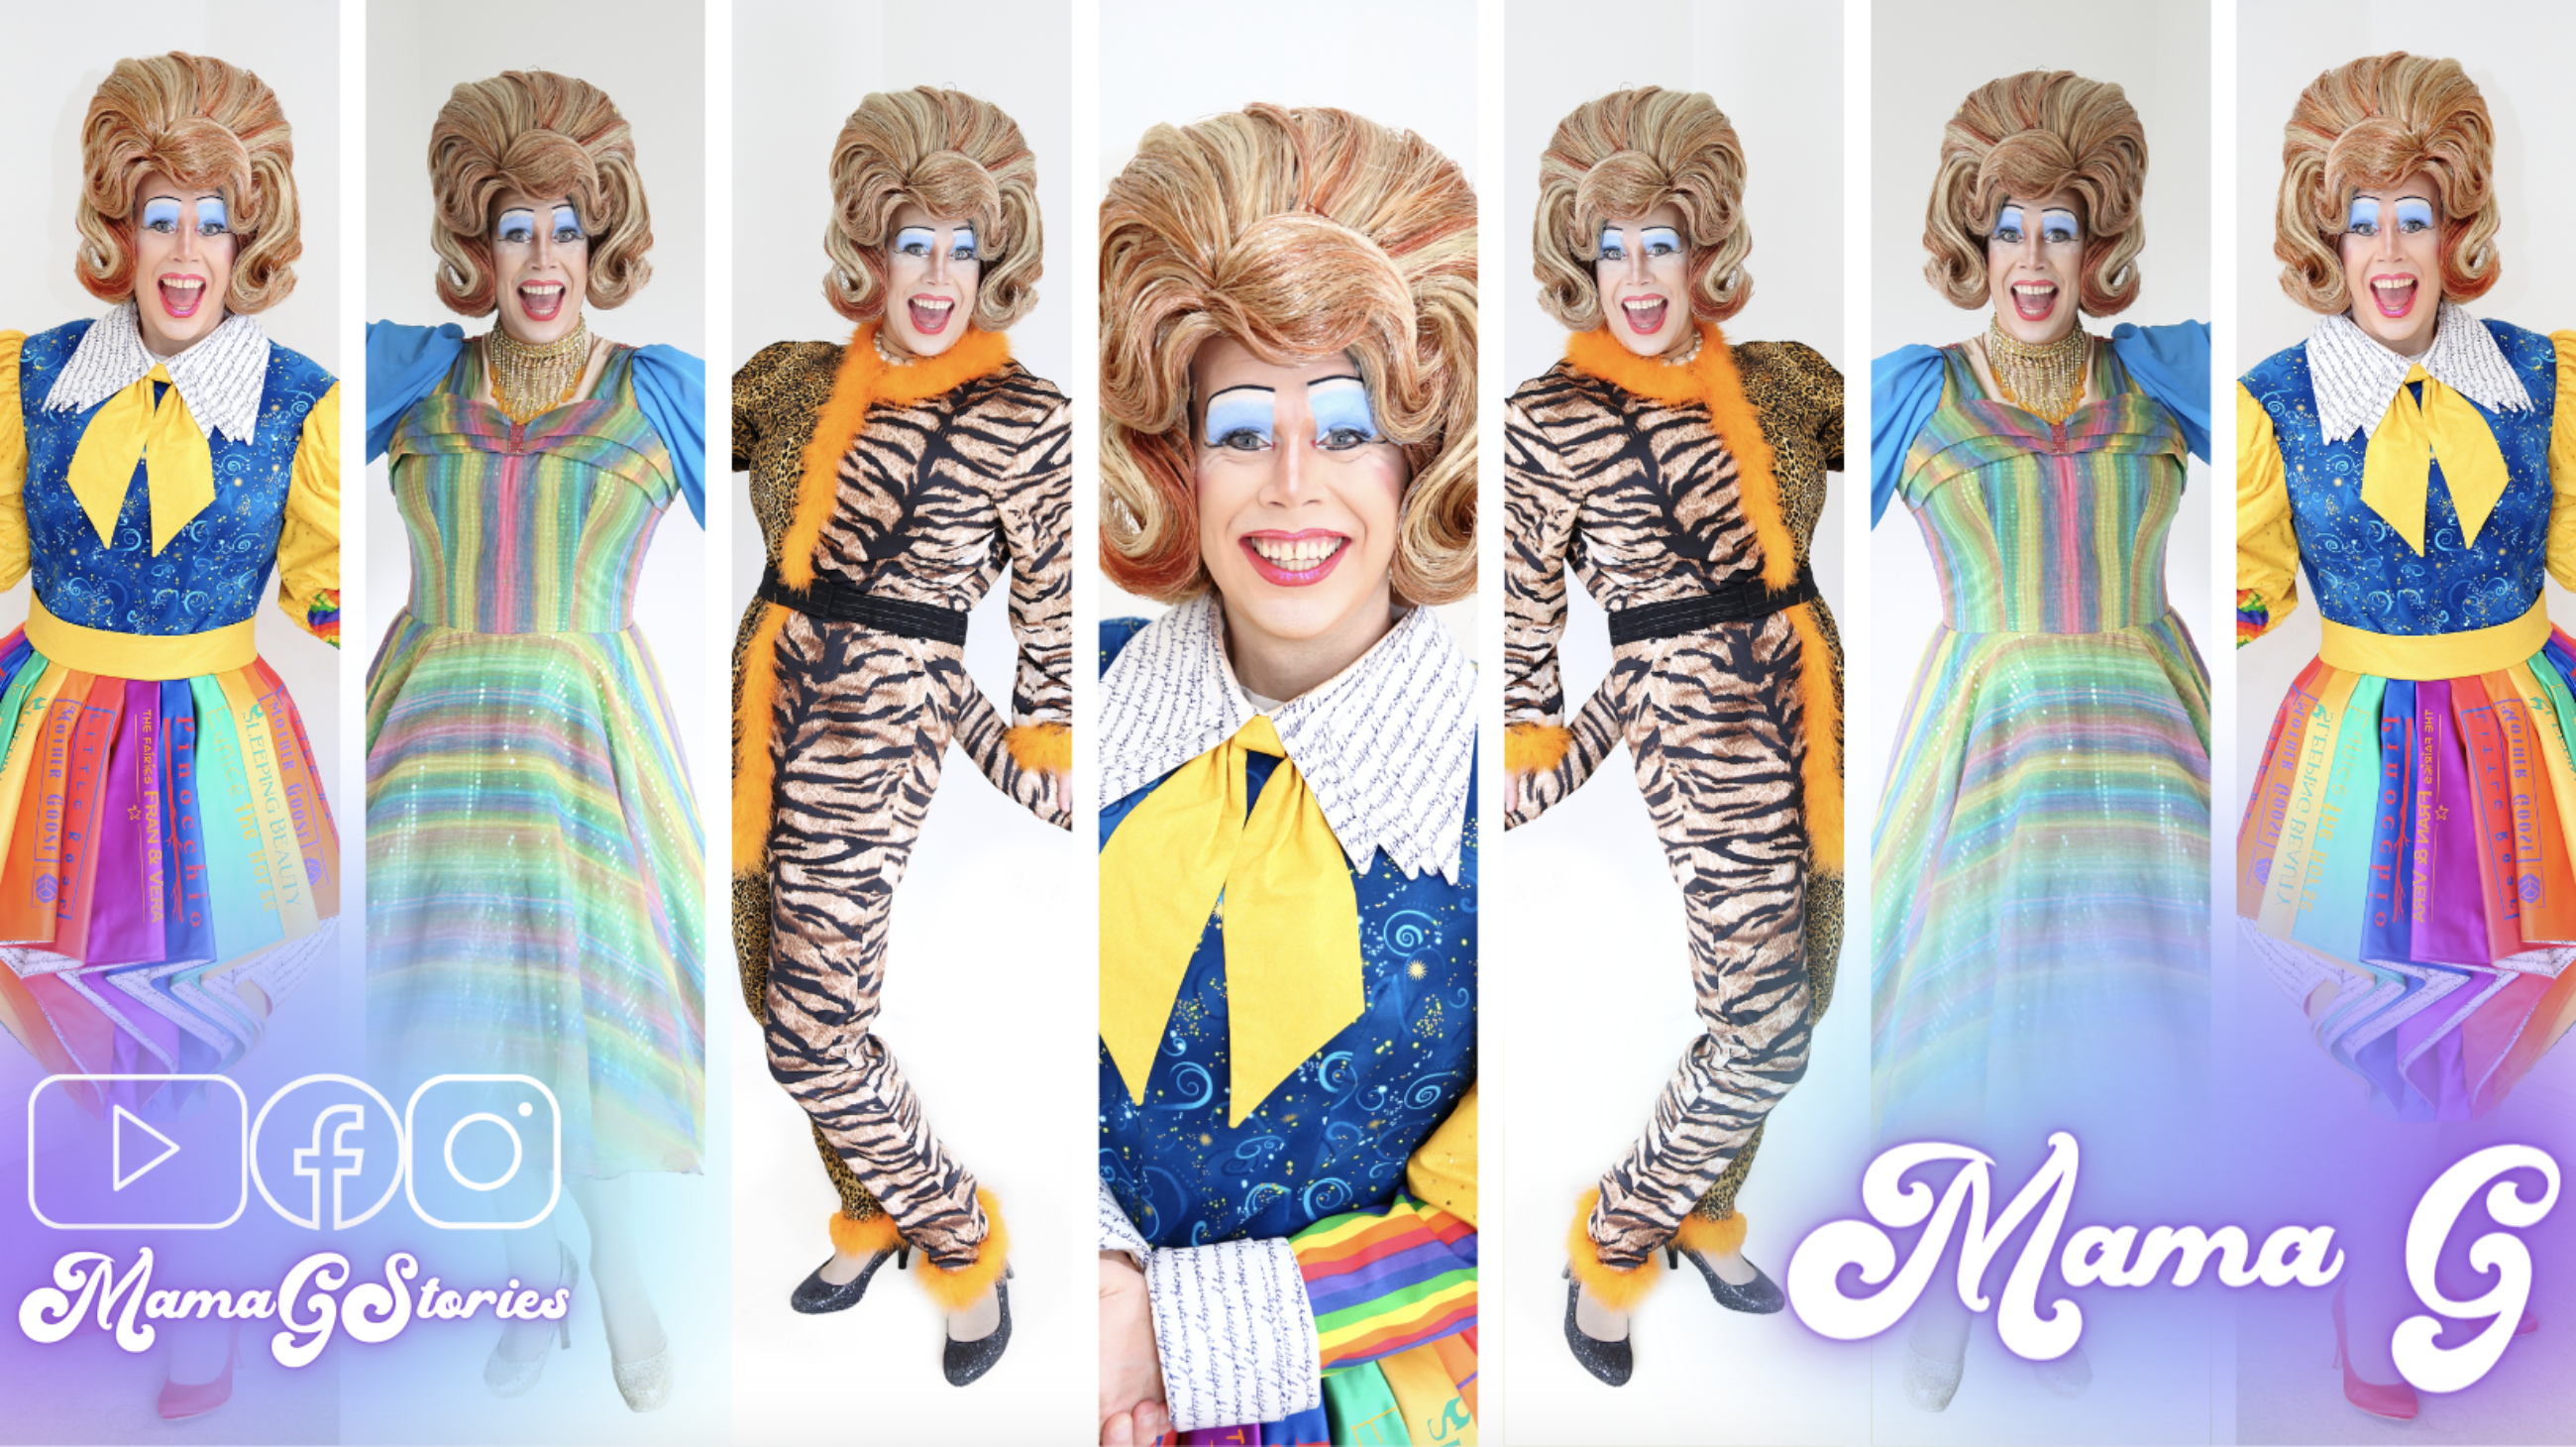 Mama G in drag in various costumes